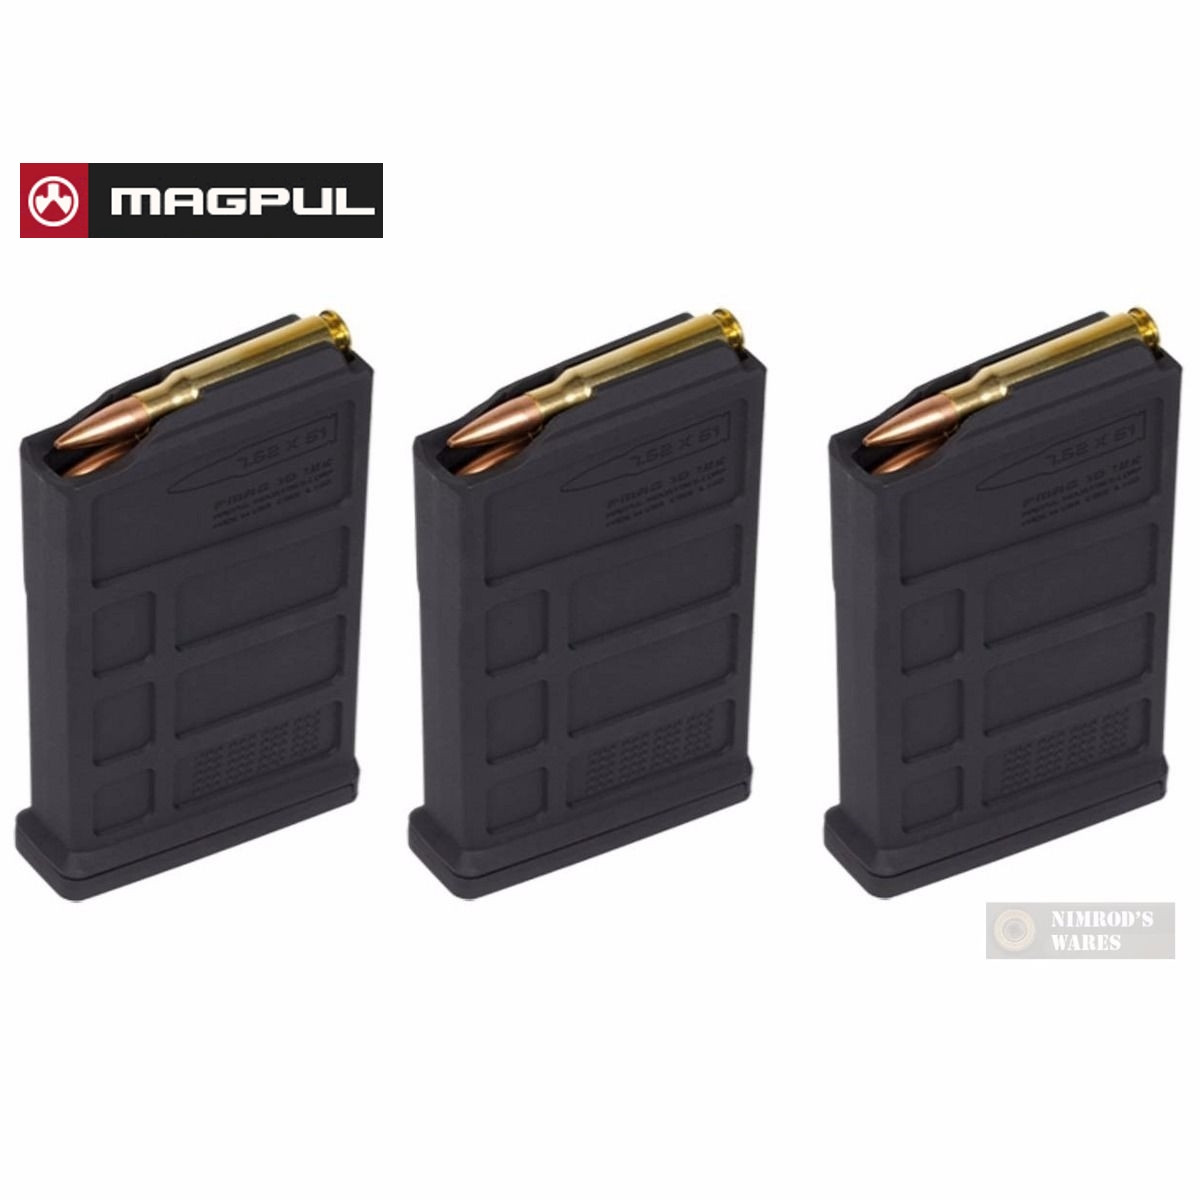 3 pack magpul hunter 7 62 ac aics short action 10 round magazine